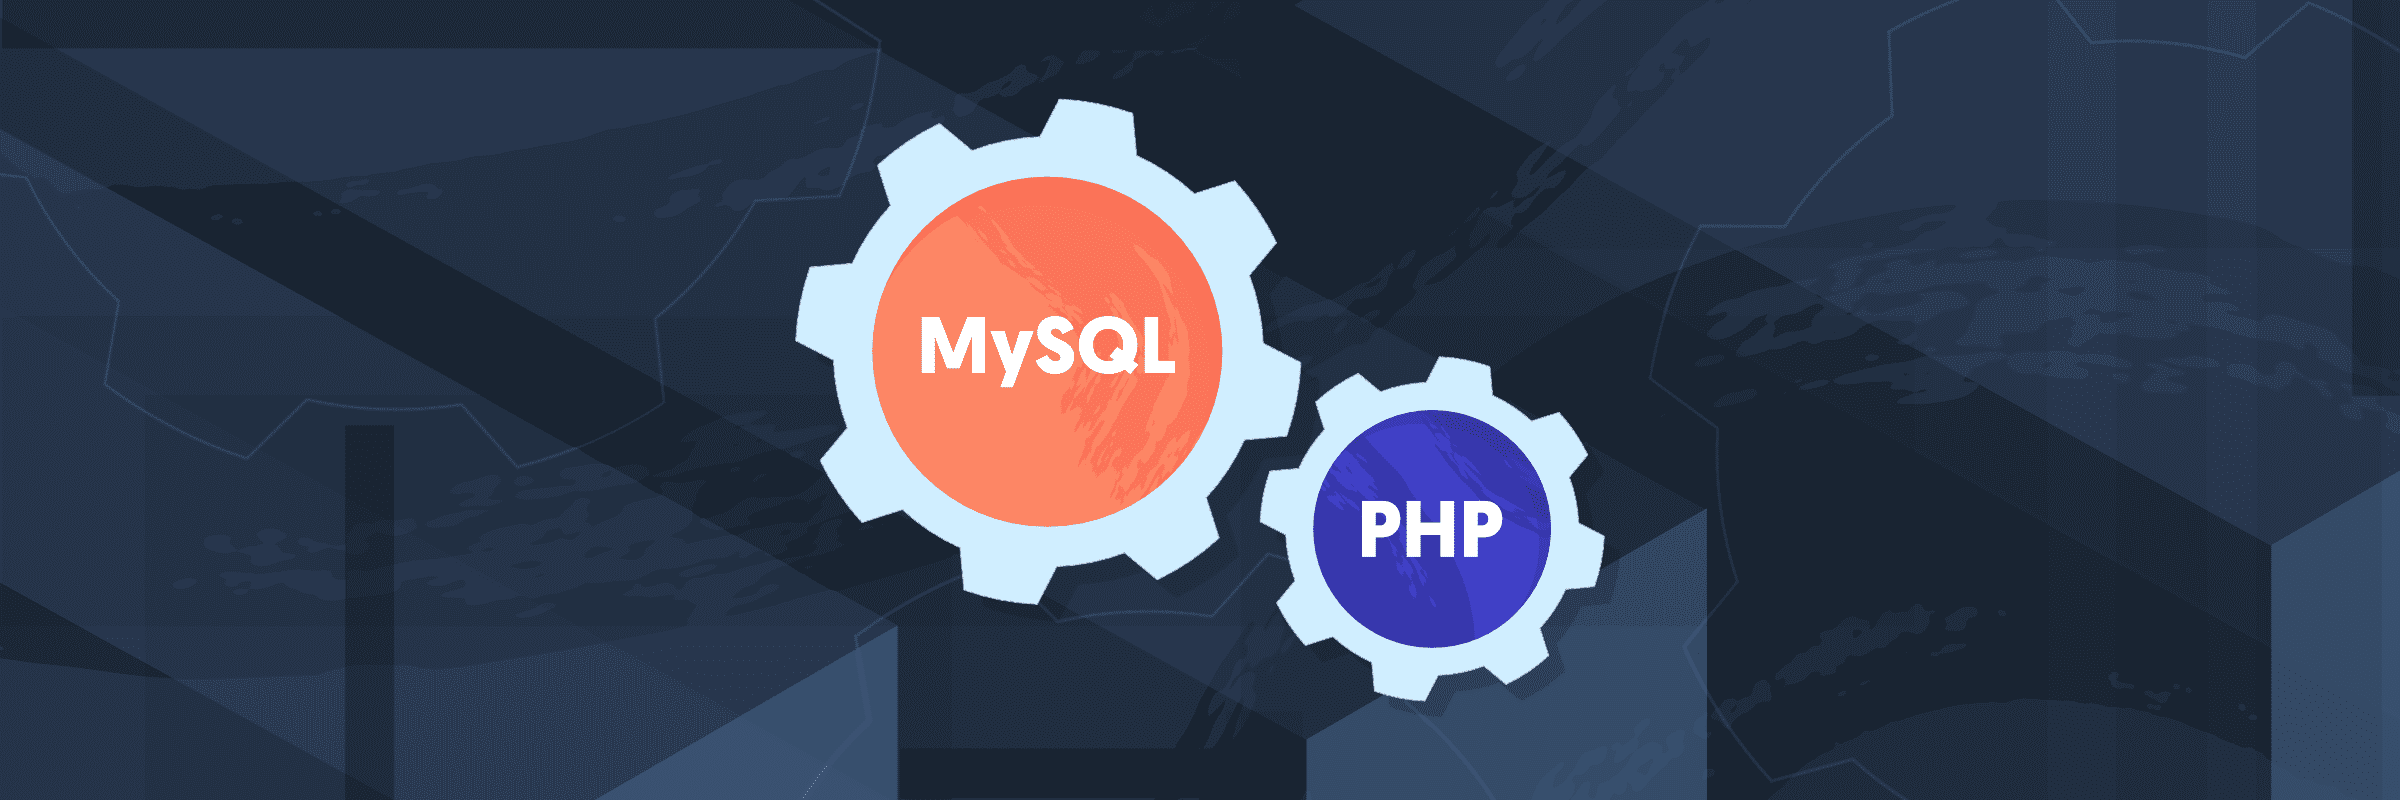 How to use MySQL in PHP builds